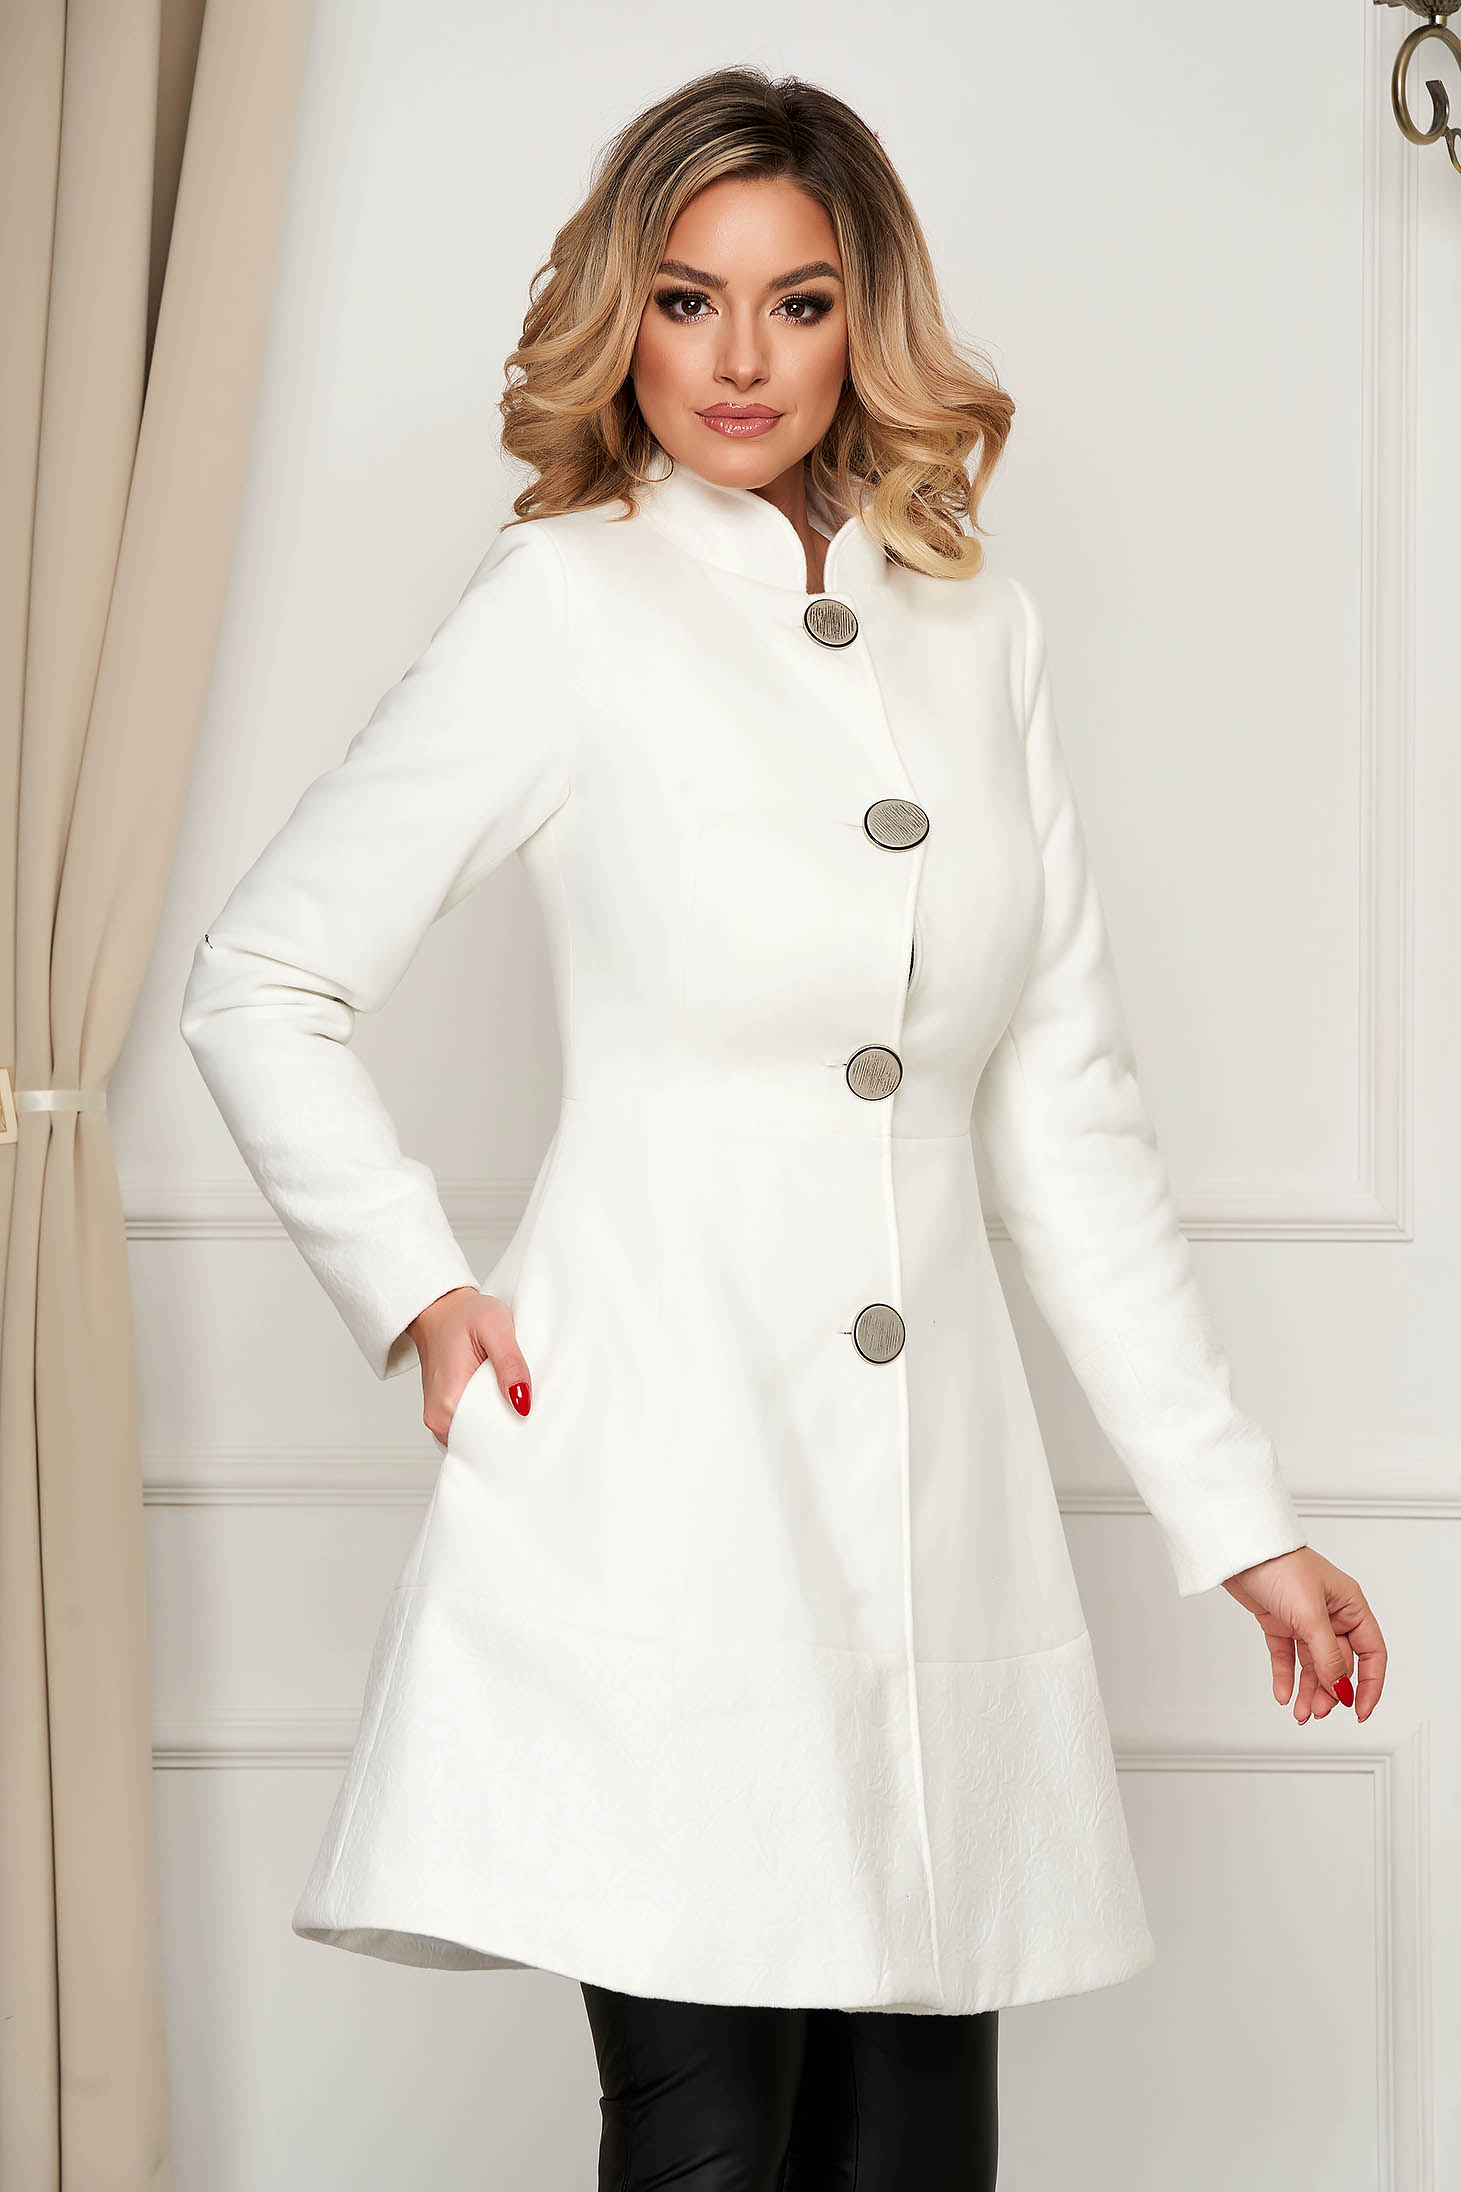 Elegant white coat cloth cloche with pockets with inside lining